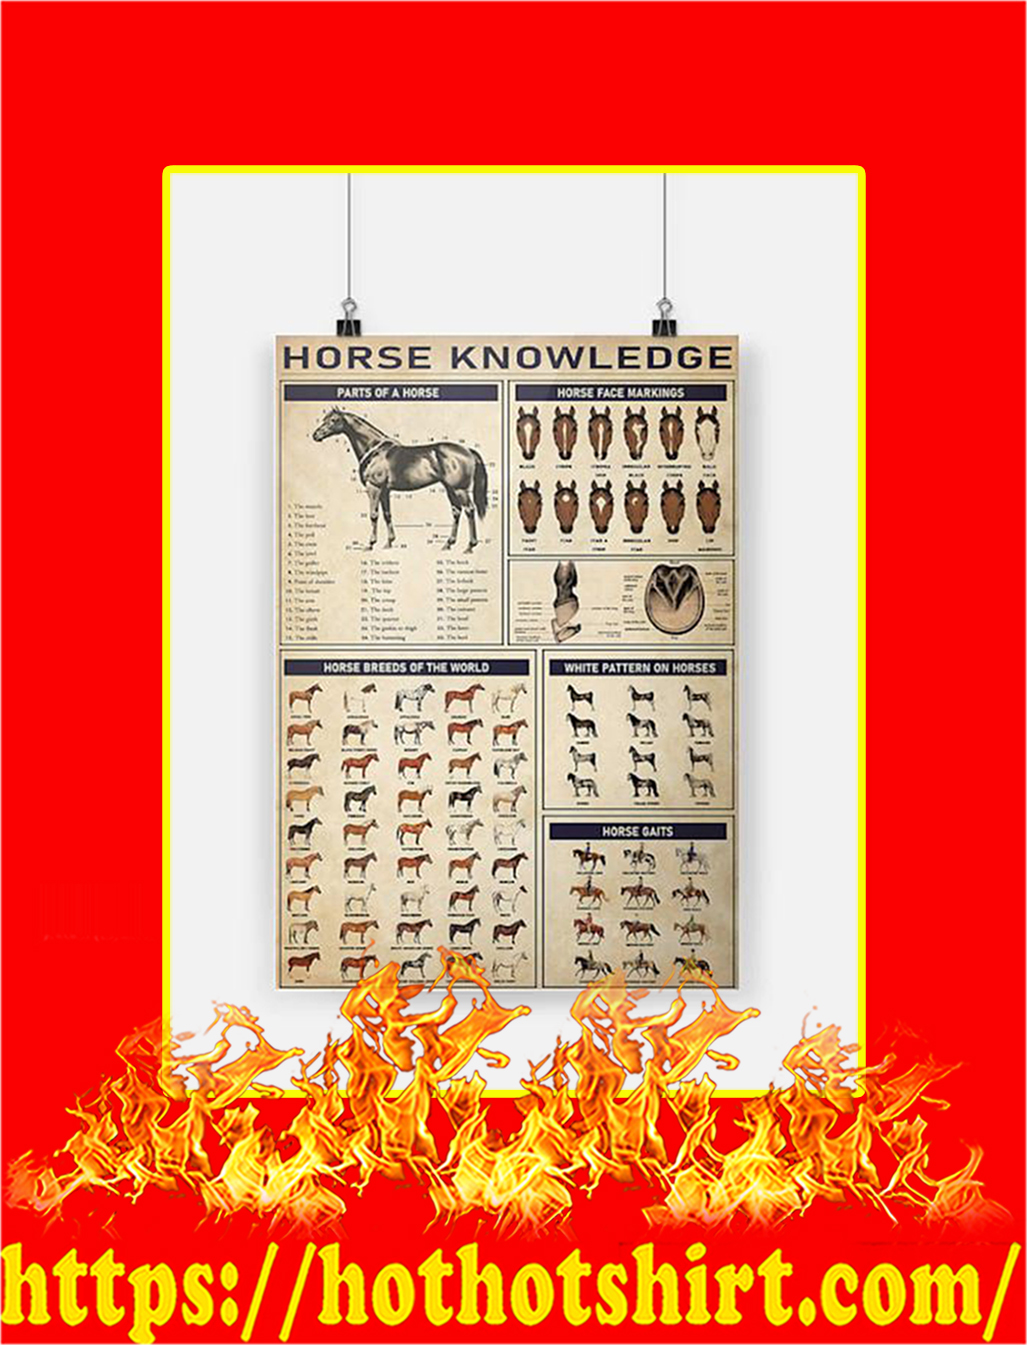 Horse knowledge Poster - A3